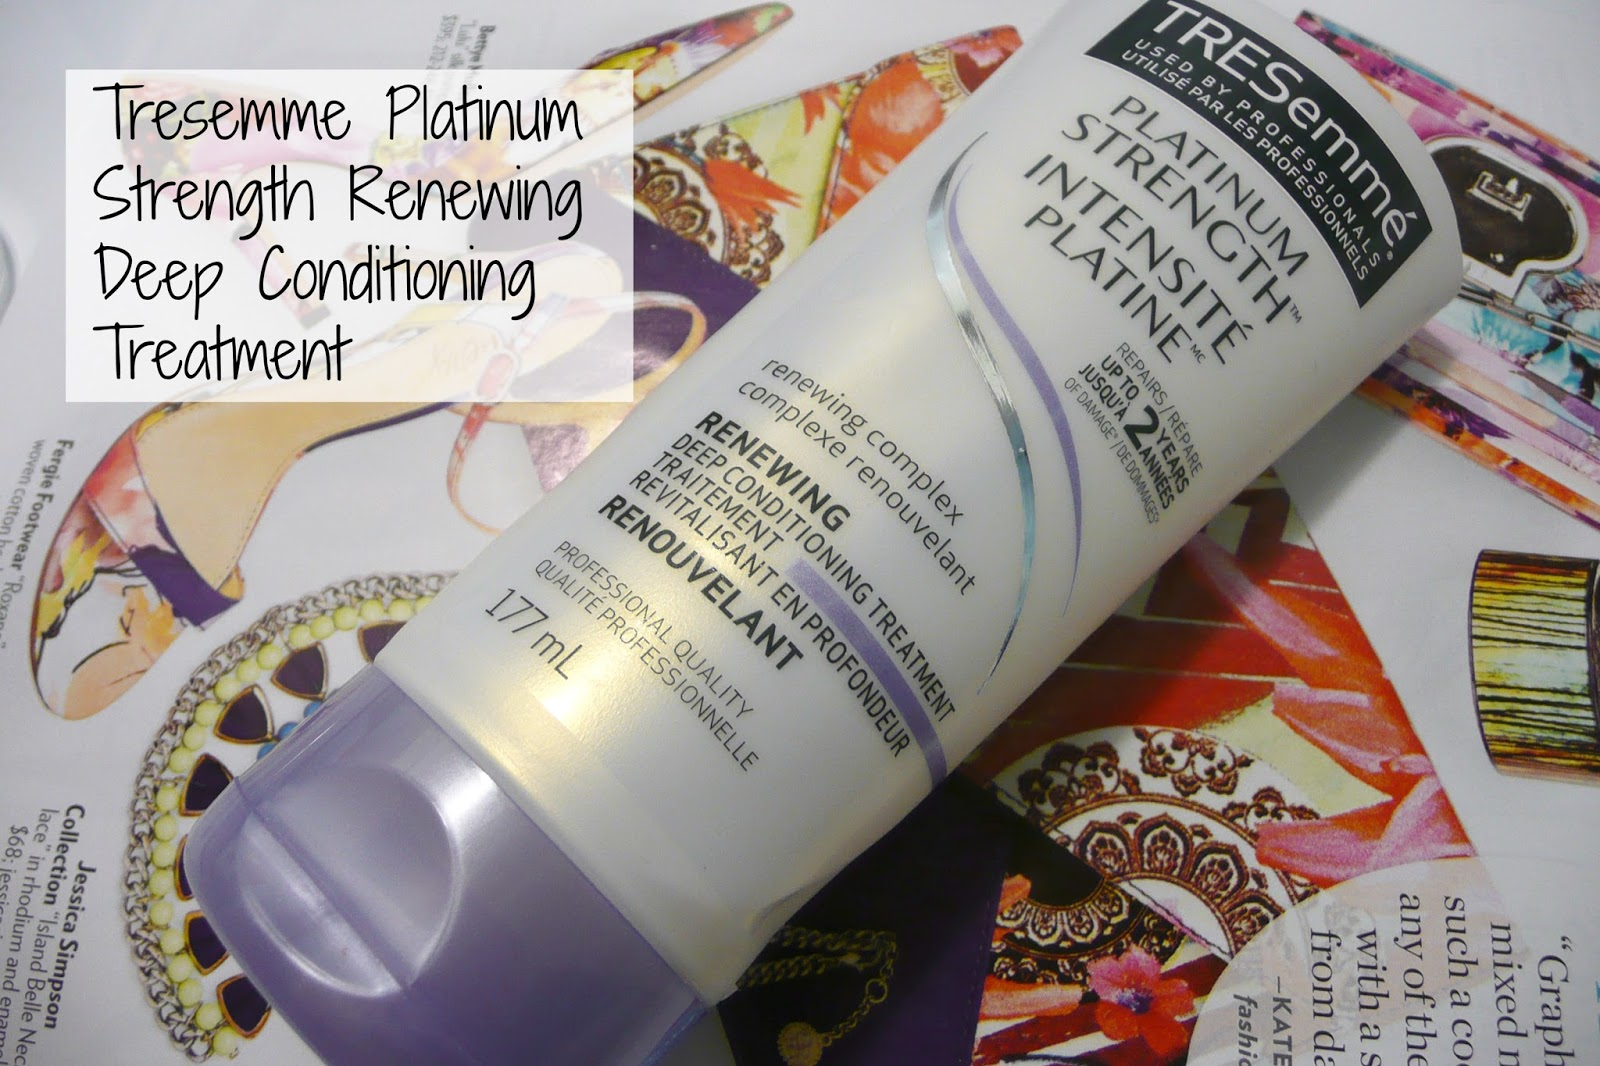 Tresemme Platinum Strength Review